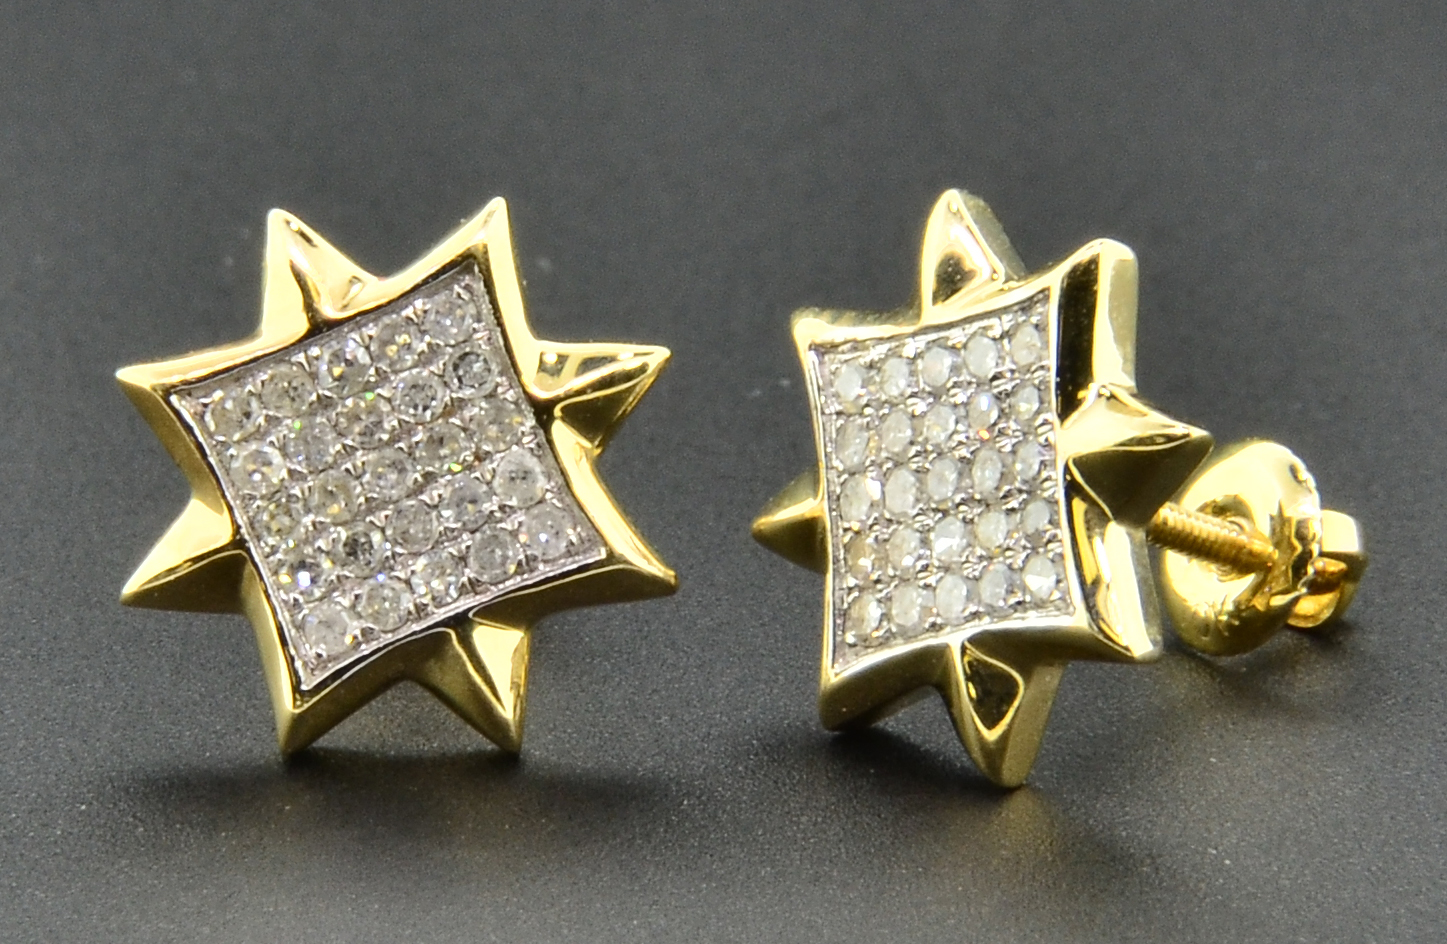 diamond studs 8 point star mens ladies 10k yellow gold. Black Bedroom Furniture Sets. Home Design Ideas